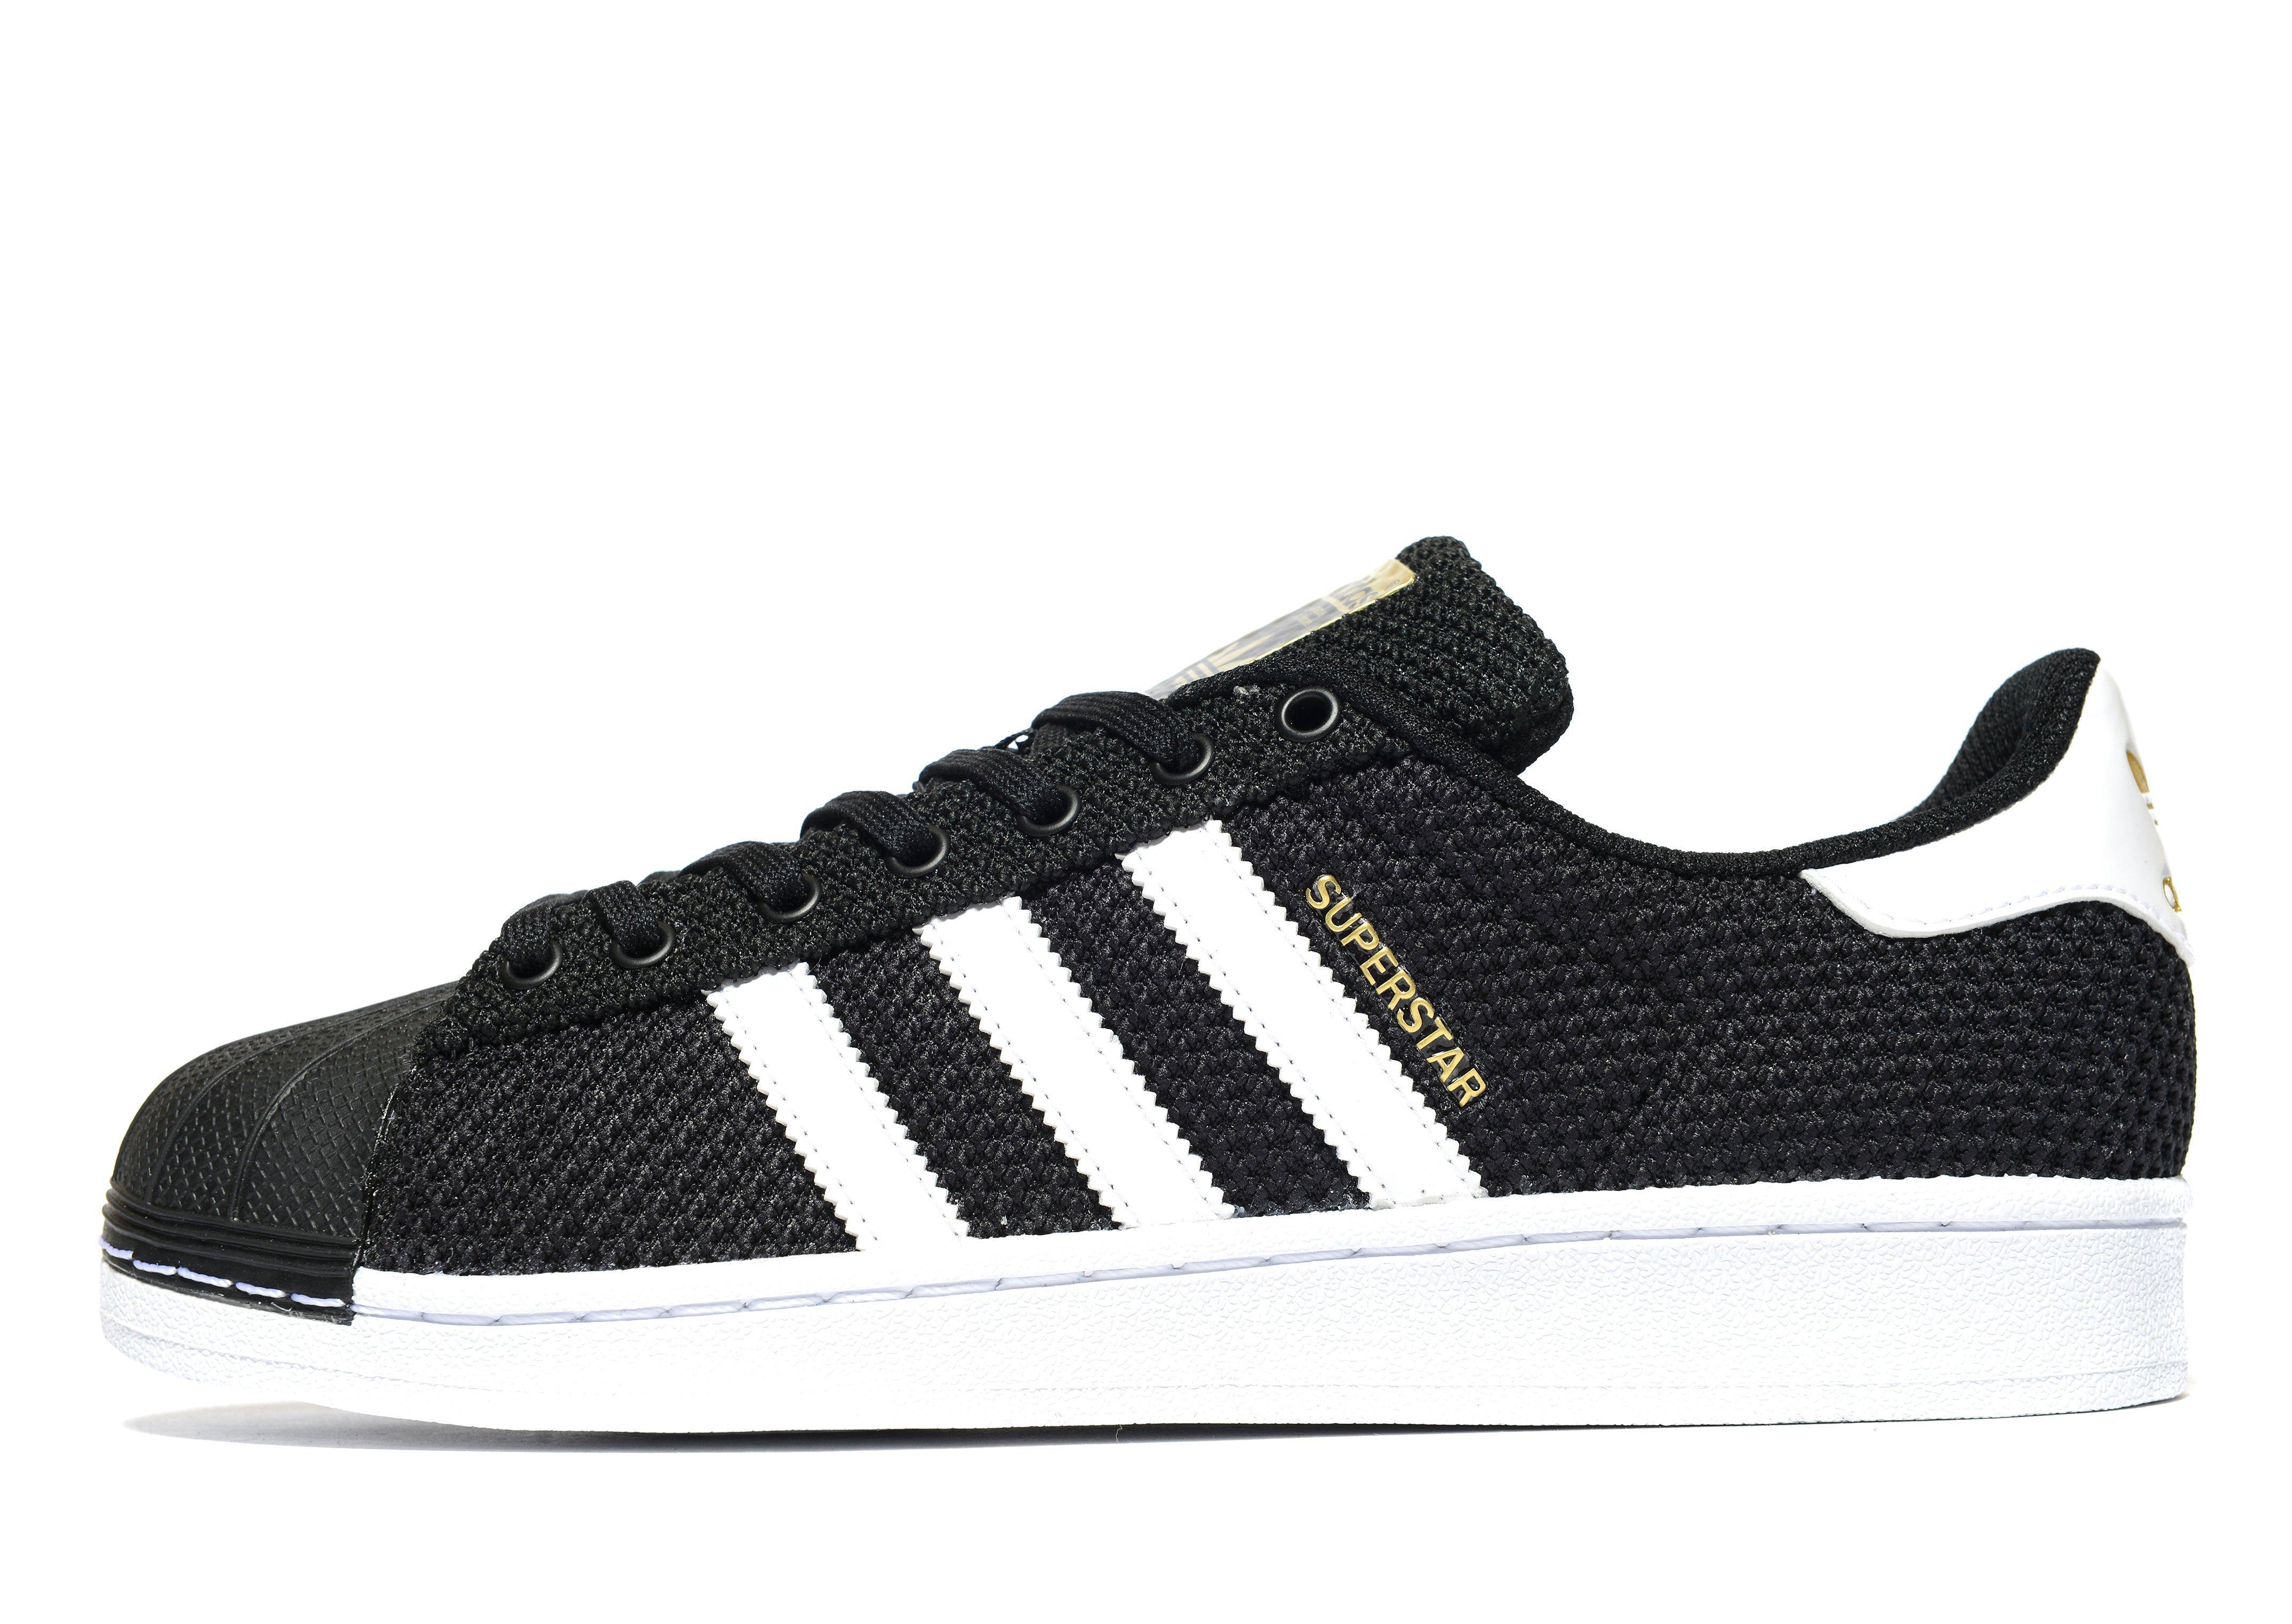 save off 9feac 2e30c Adidas Originals Superstar Knit in Black for Men - Lyst